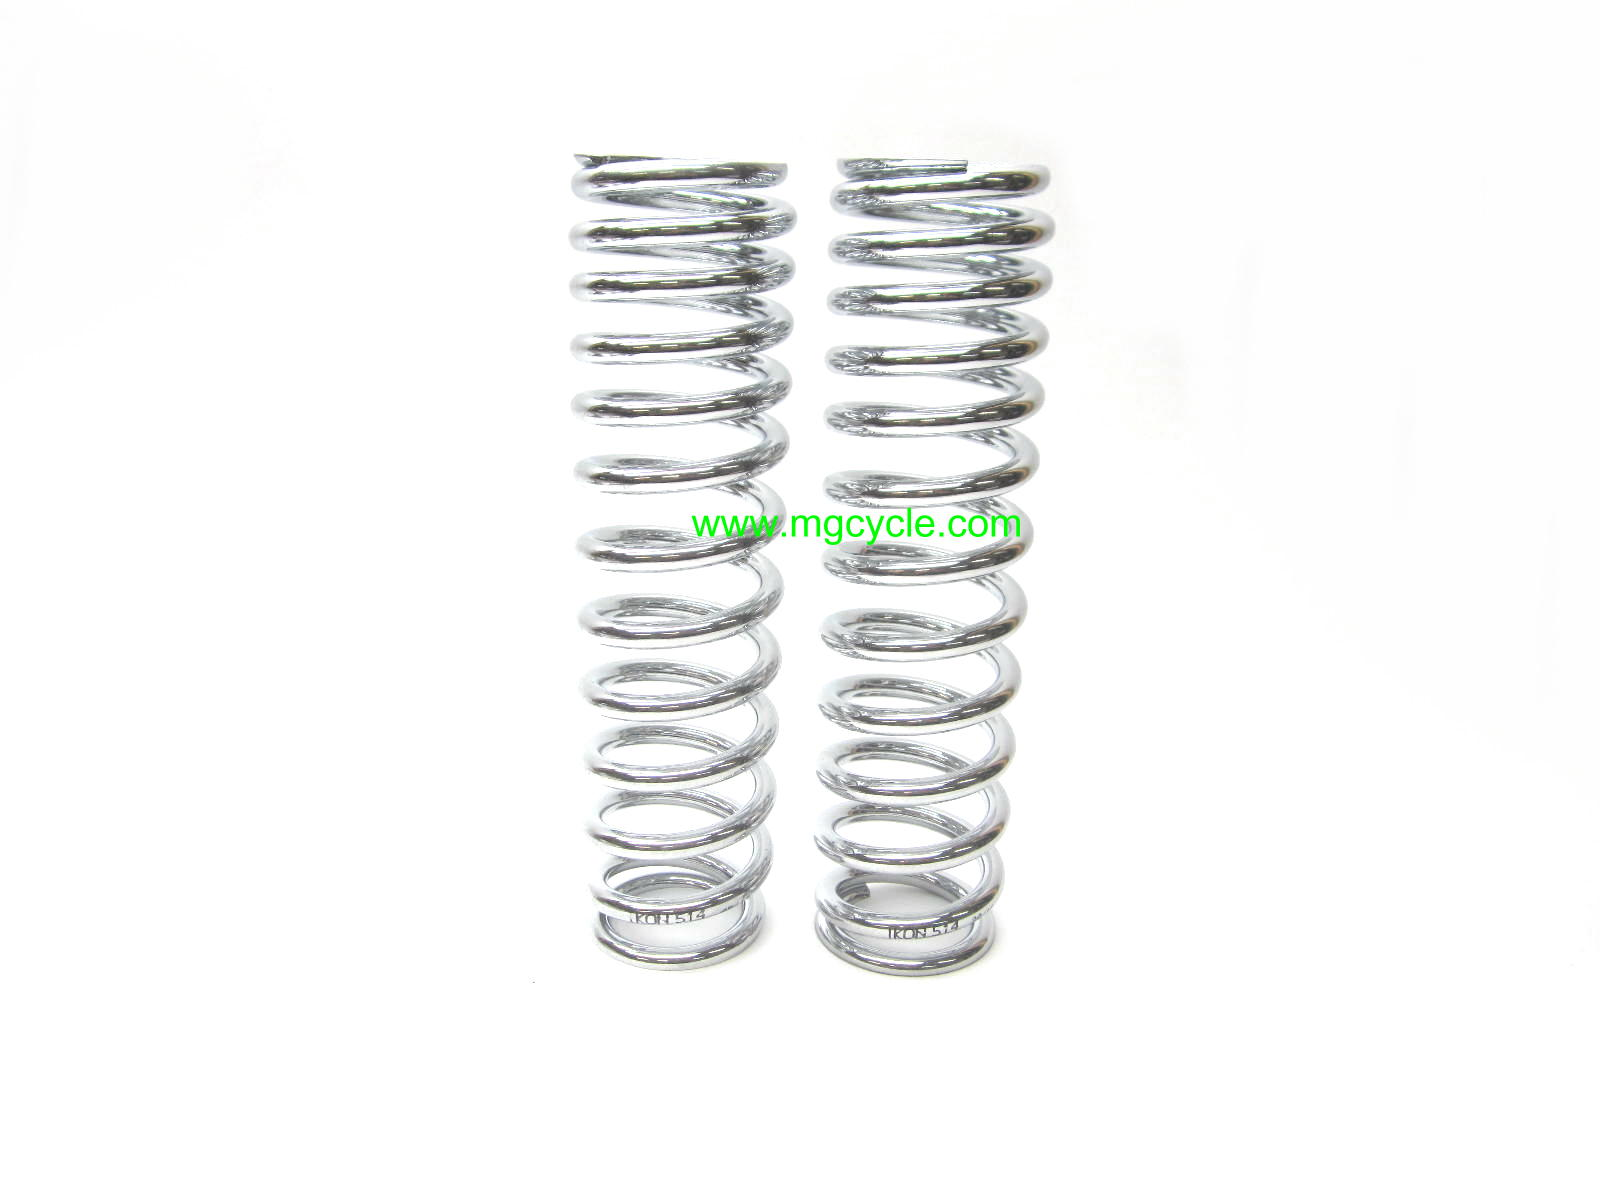 Ikon spring pair, chrome, 235mm medium heavy